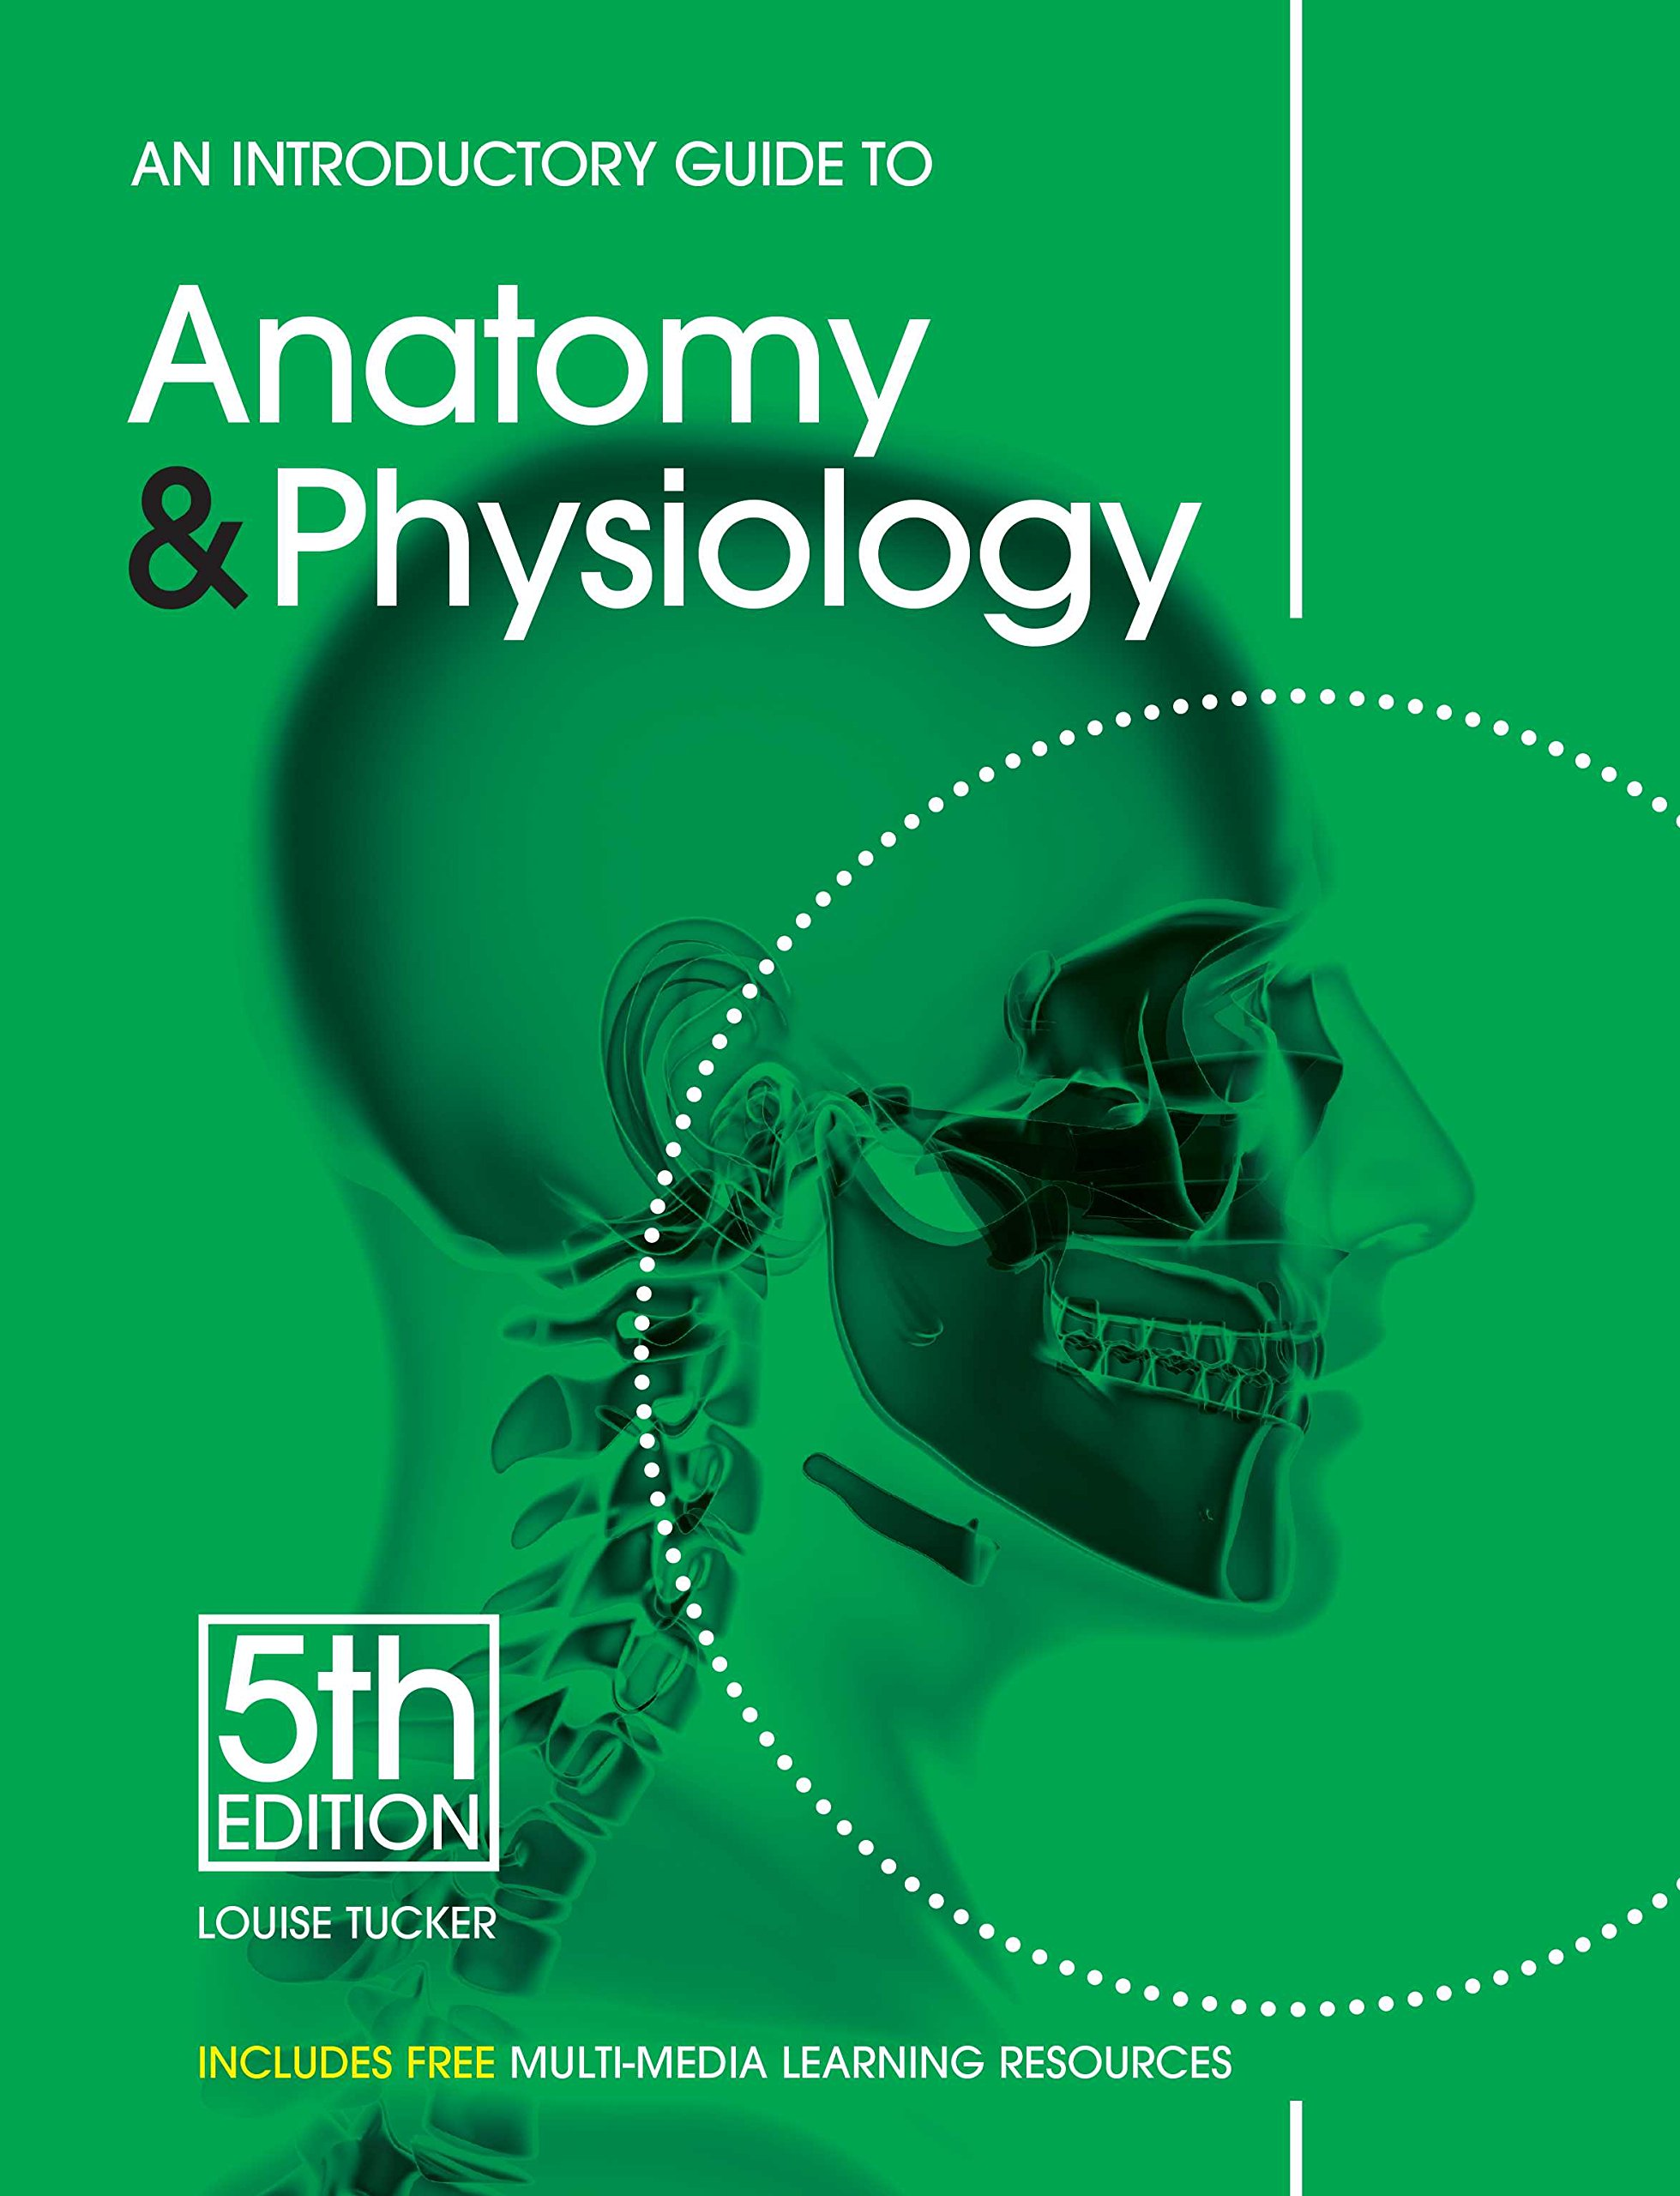 An Introductory Guide to Anatomy & Physiology: Amazon.co.uk: Louise ...